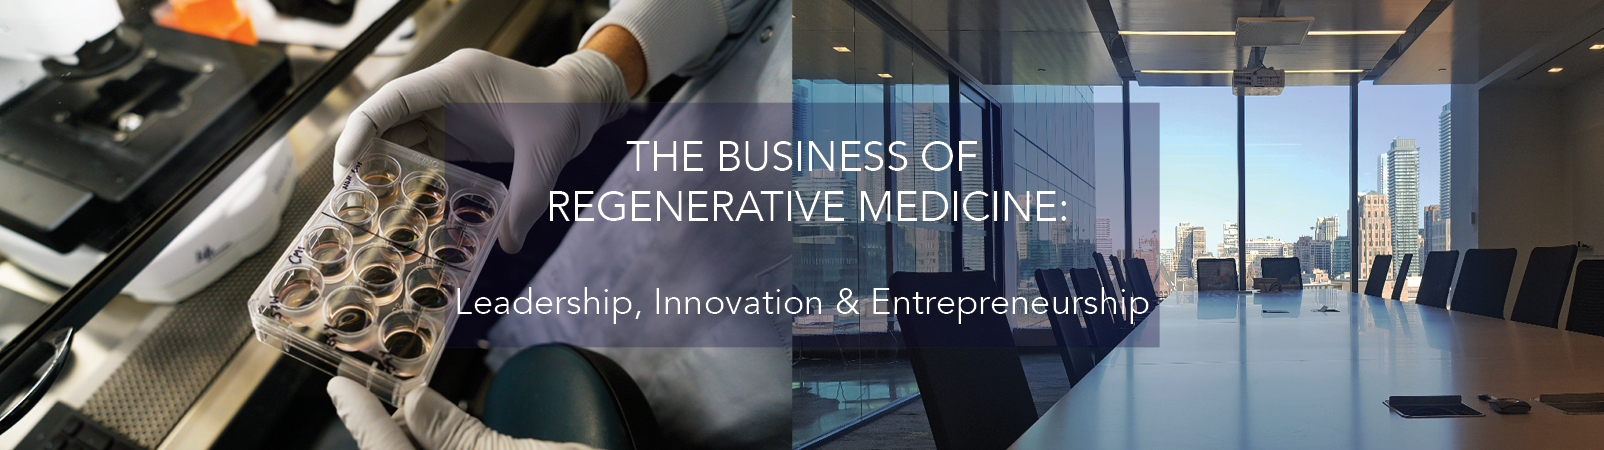 Business of Regenerative Medicine